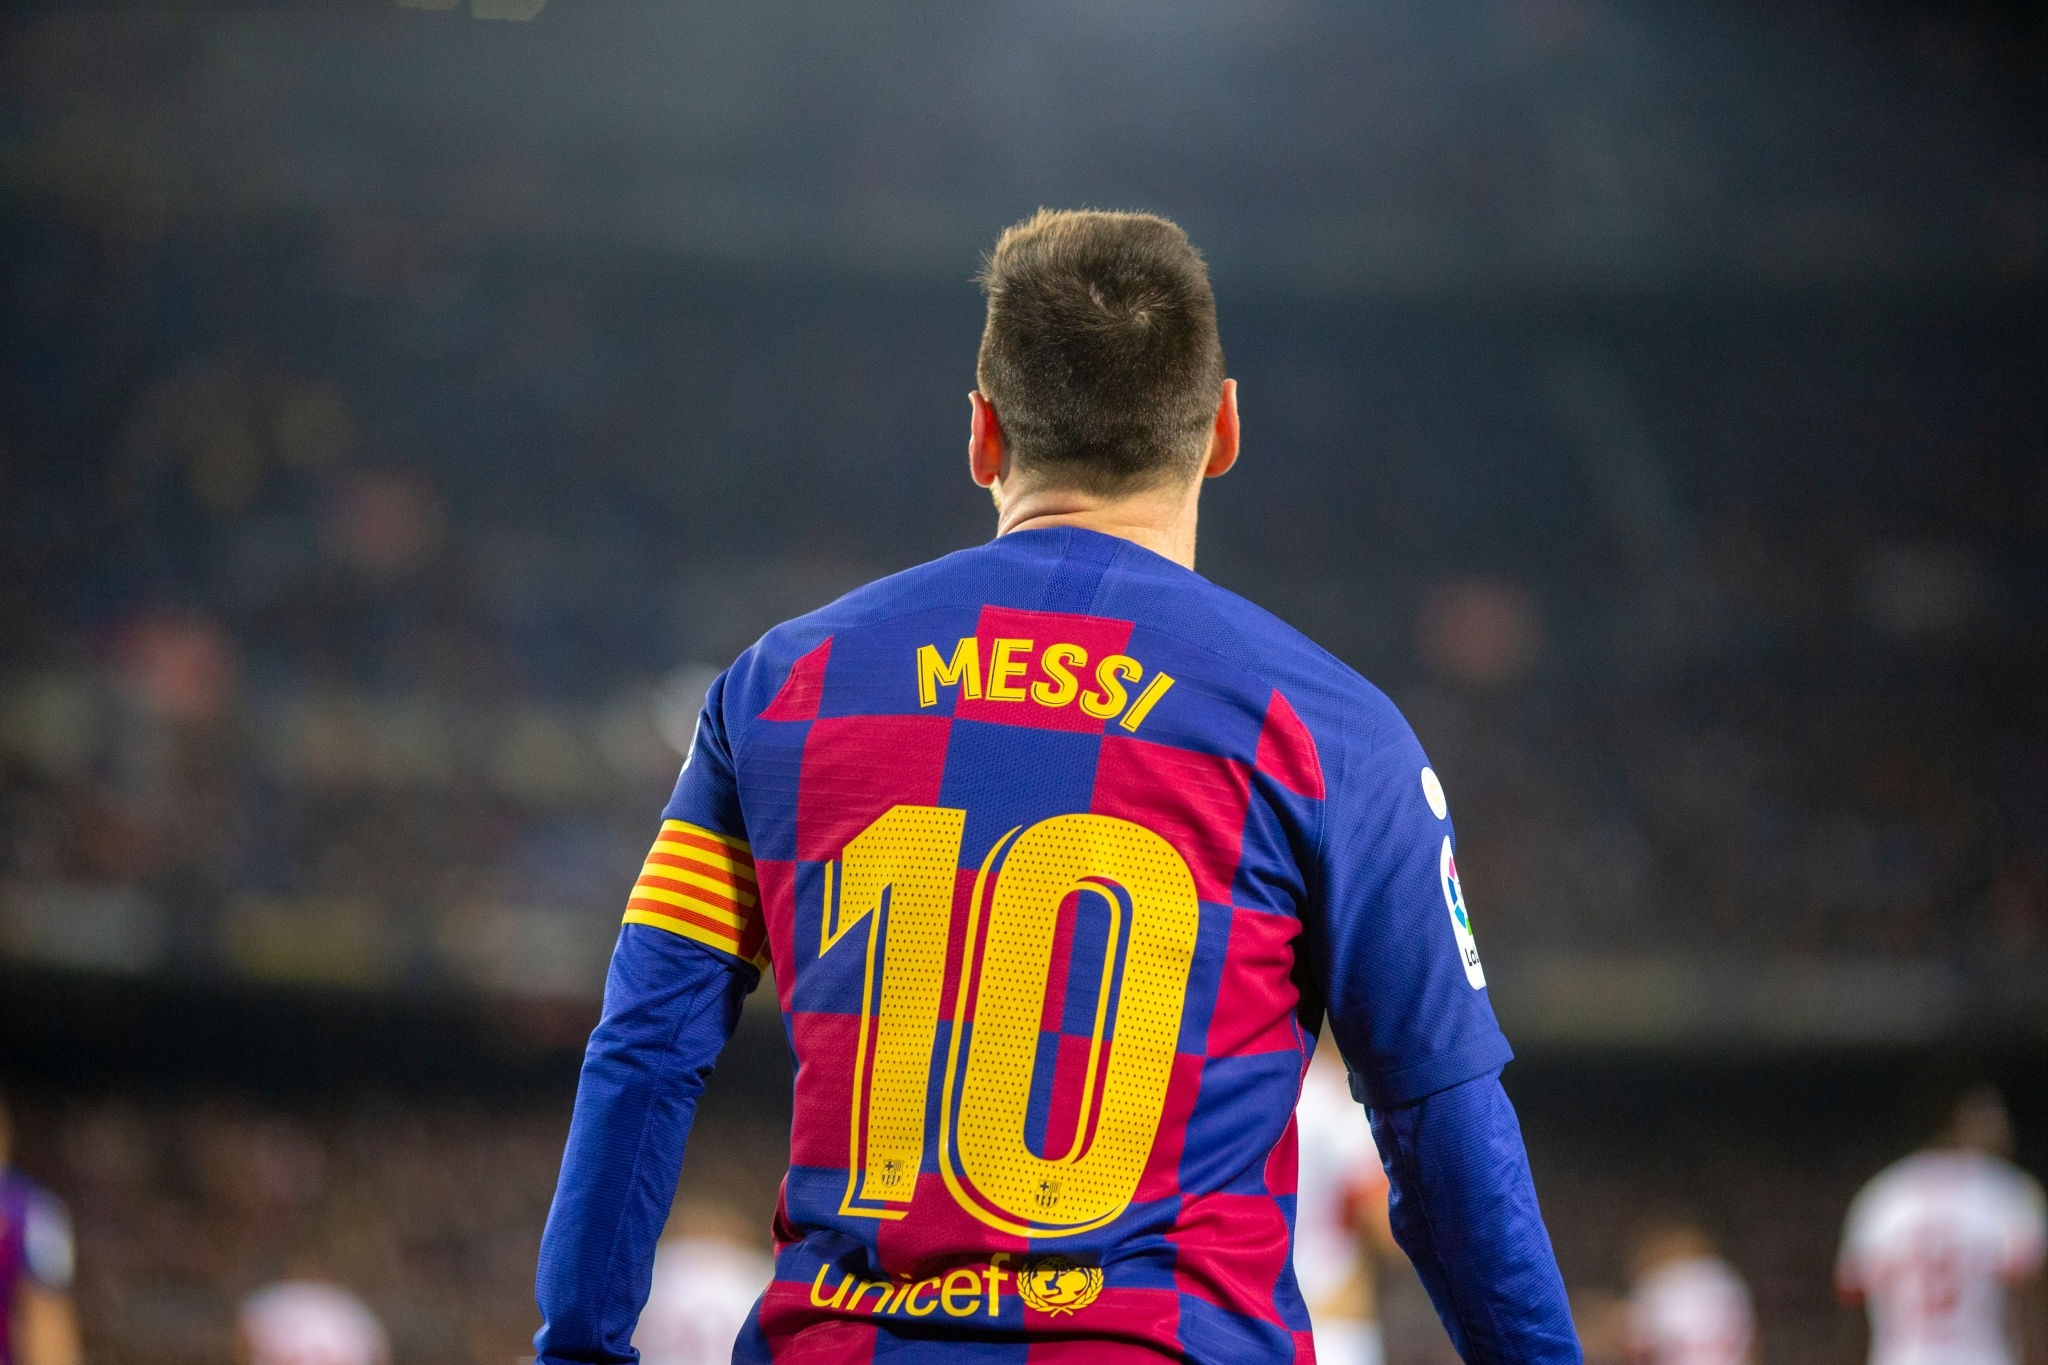 Lionel Messi to miss Barca clash with Inter Milan as Clasico looms